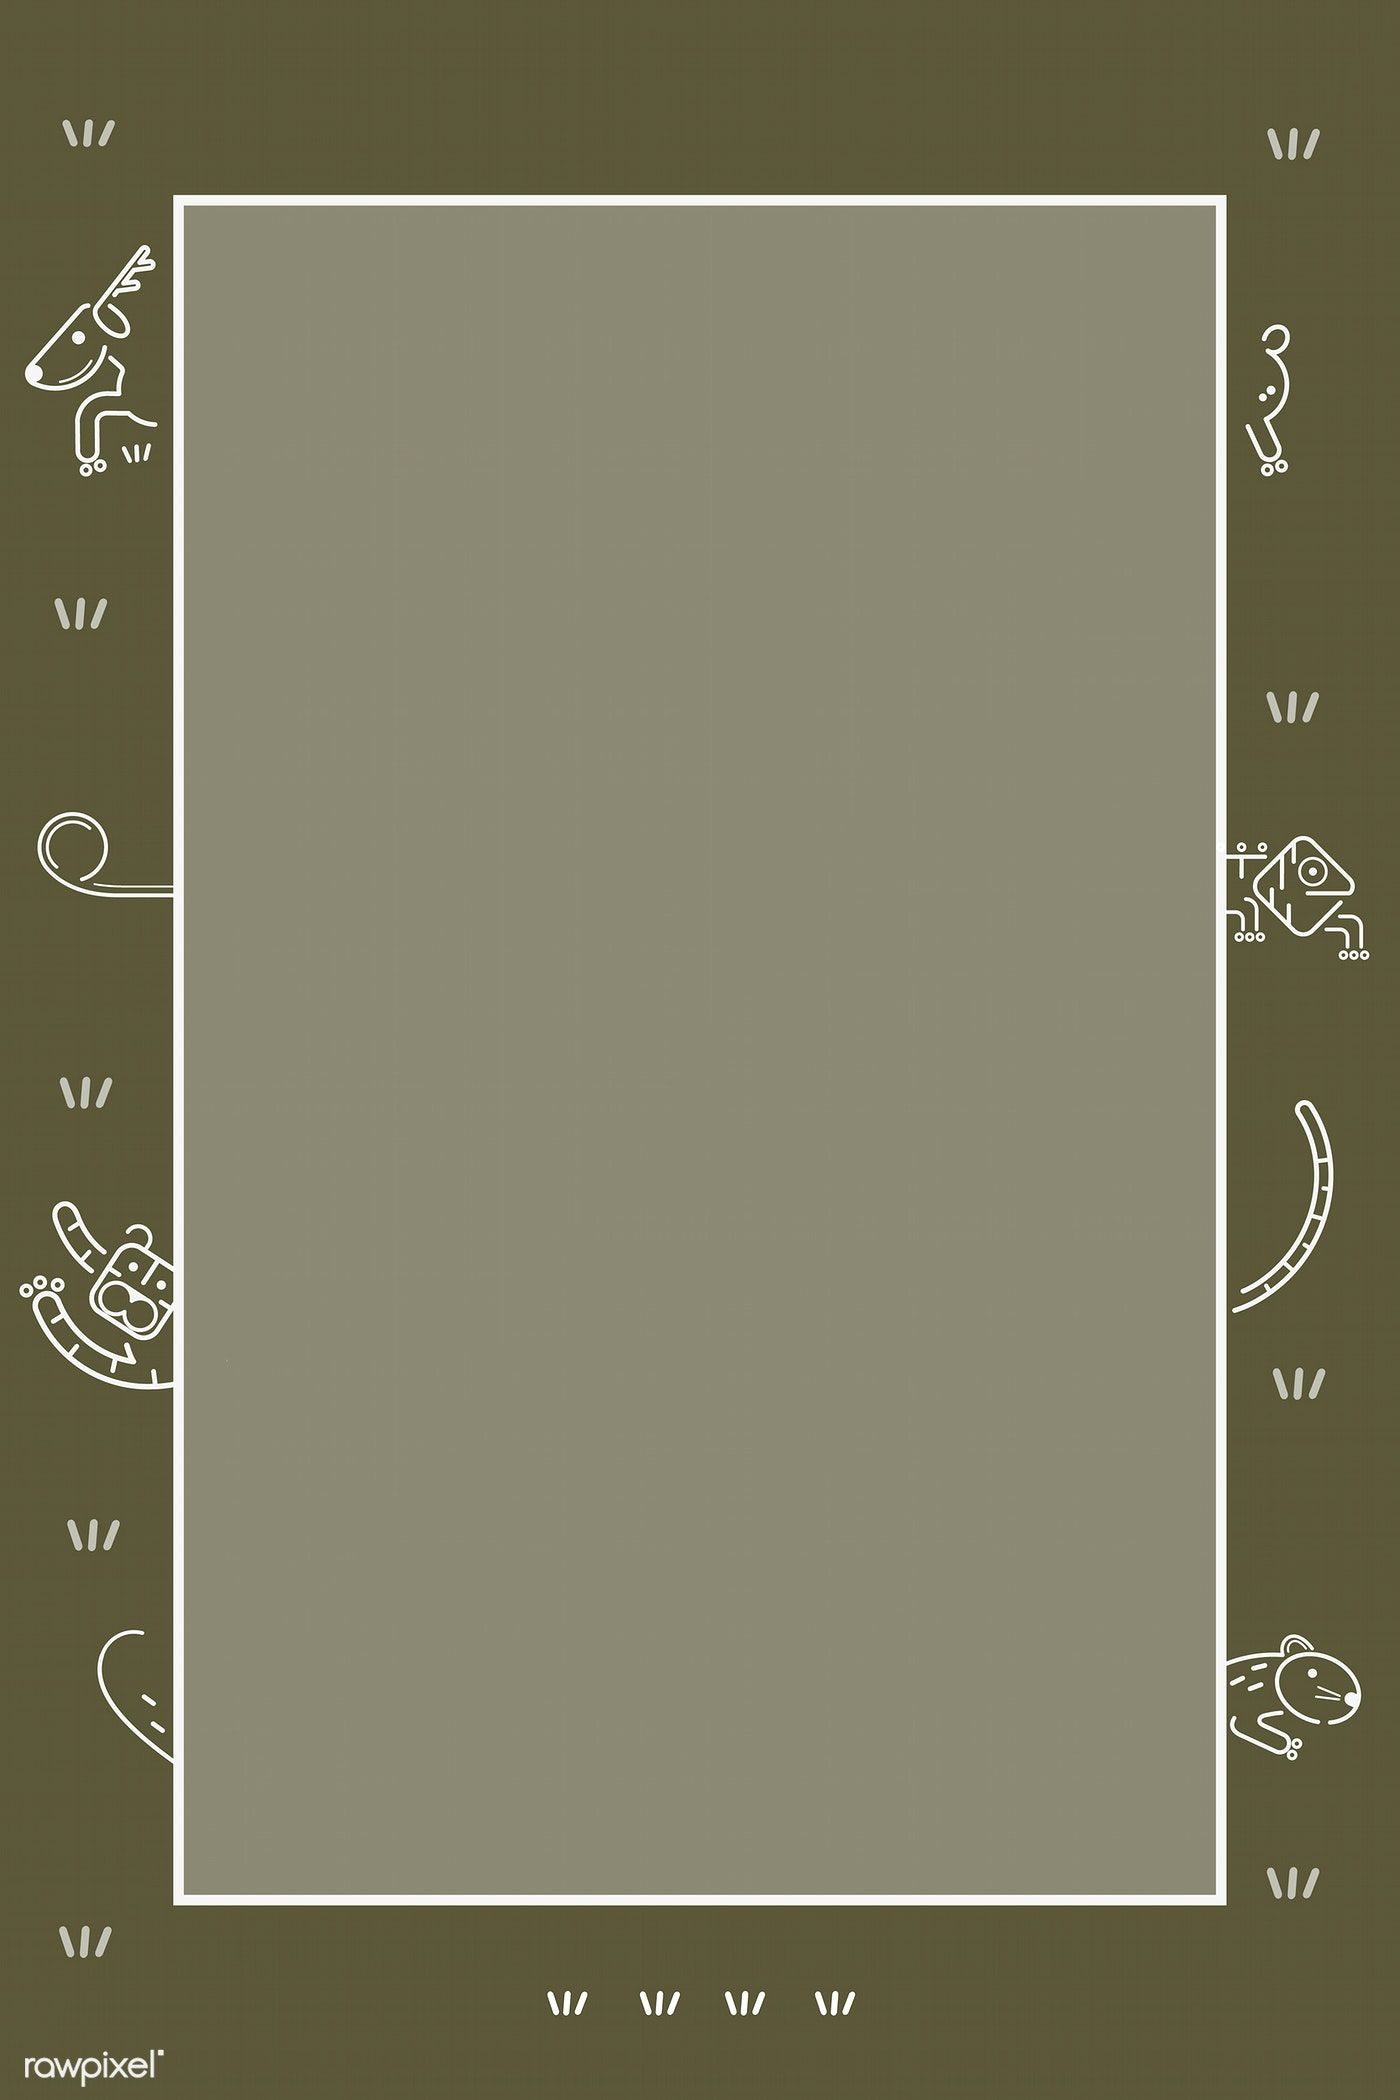 Animals Pattern On A Green Card Template Vector Free Image By Rawpixel Com Kenbaolocpro Instagram Frame Template Stock Images Free Vector Free